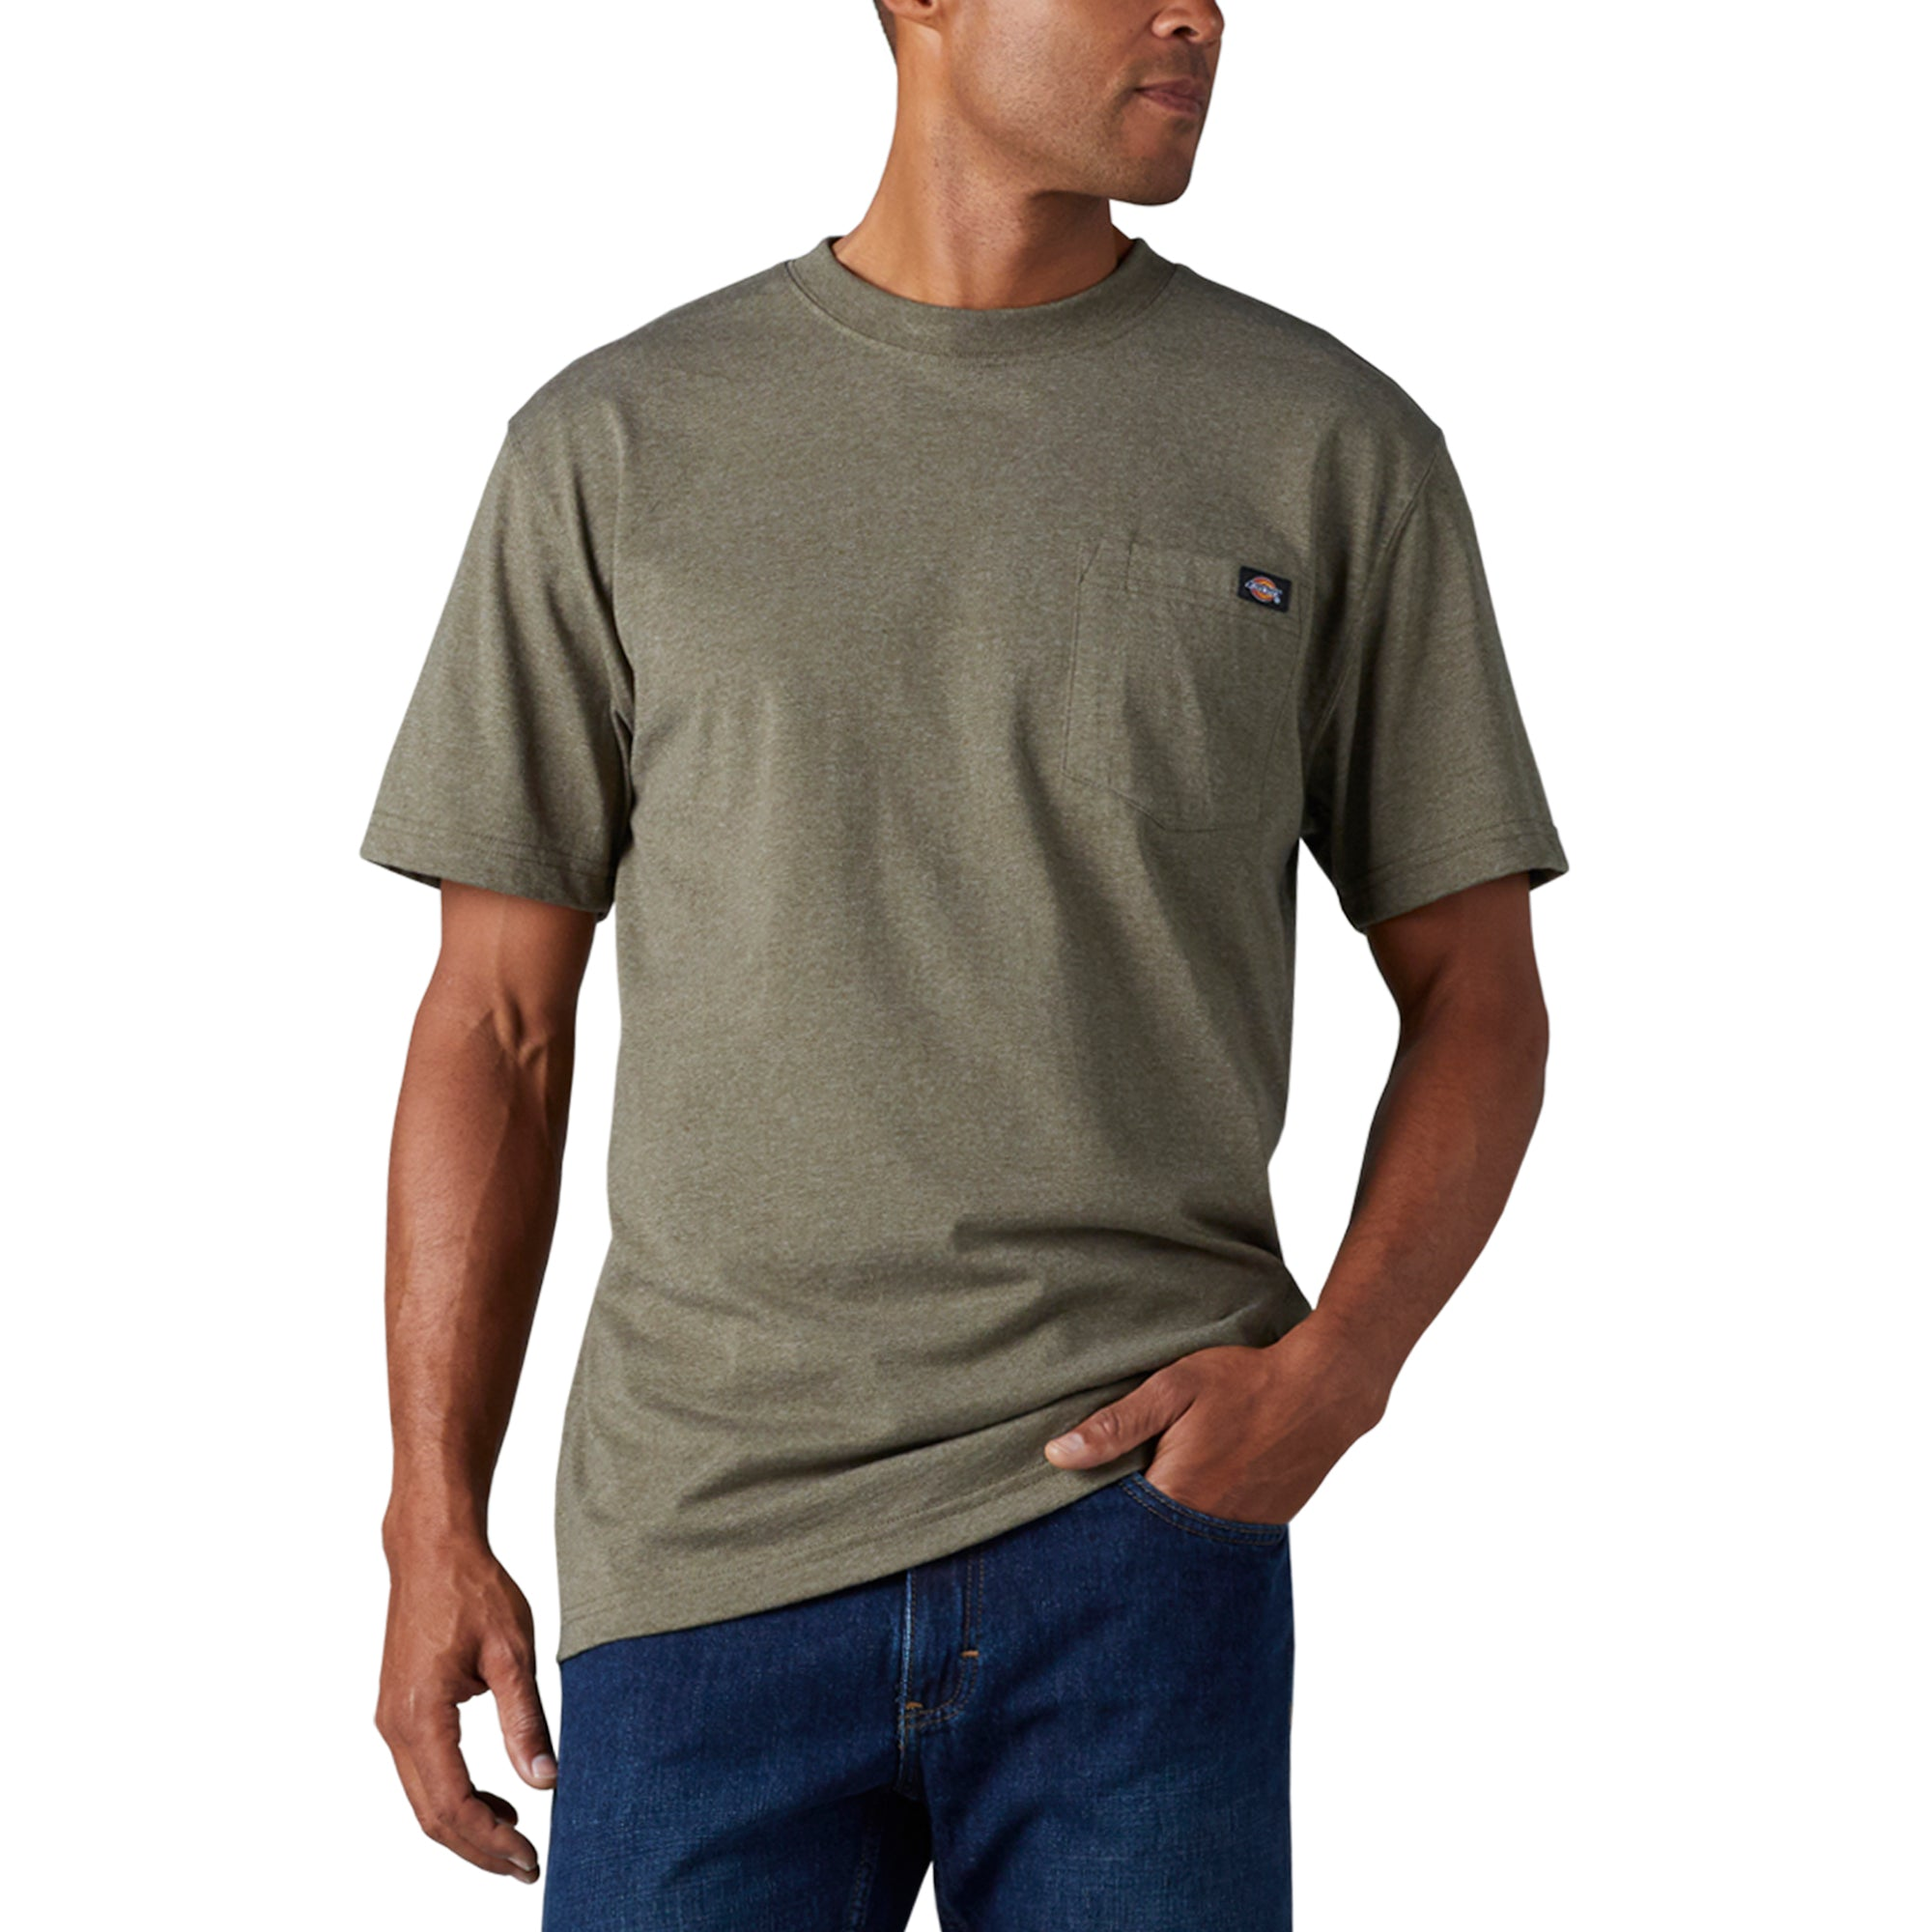 'Dickies' Heavyweight Crew T-Shirt - Military Green Heather